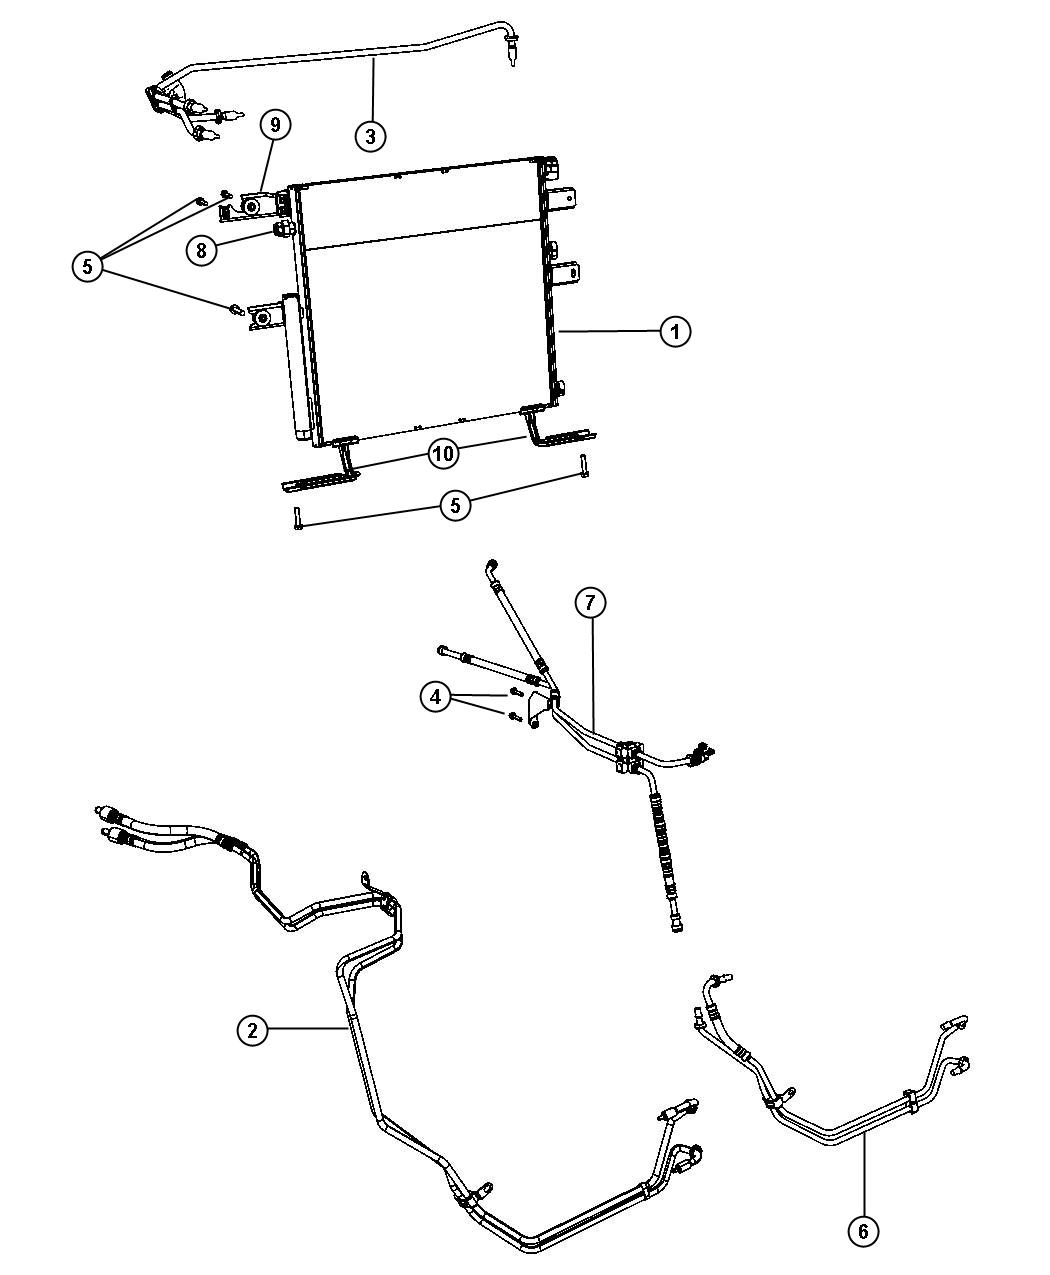 ShowAssembly as well 03 Cadillac Cts Oil Cooler Diagram besides 1967 Mustang Wiring Diagram Exterior further RepairGuideContent likewise ShowAssembly. on cadillac v6 oil cooler